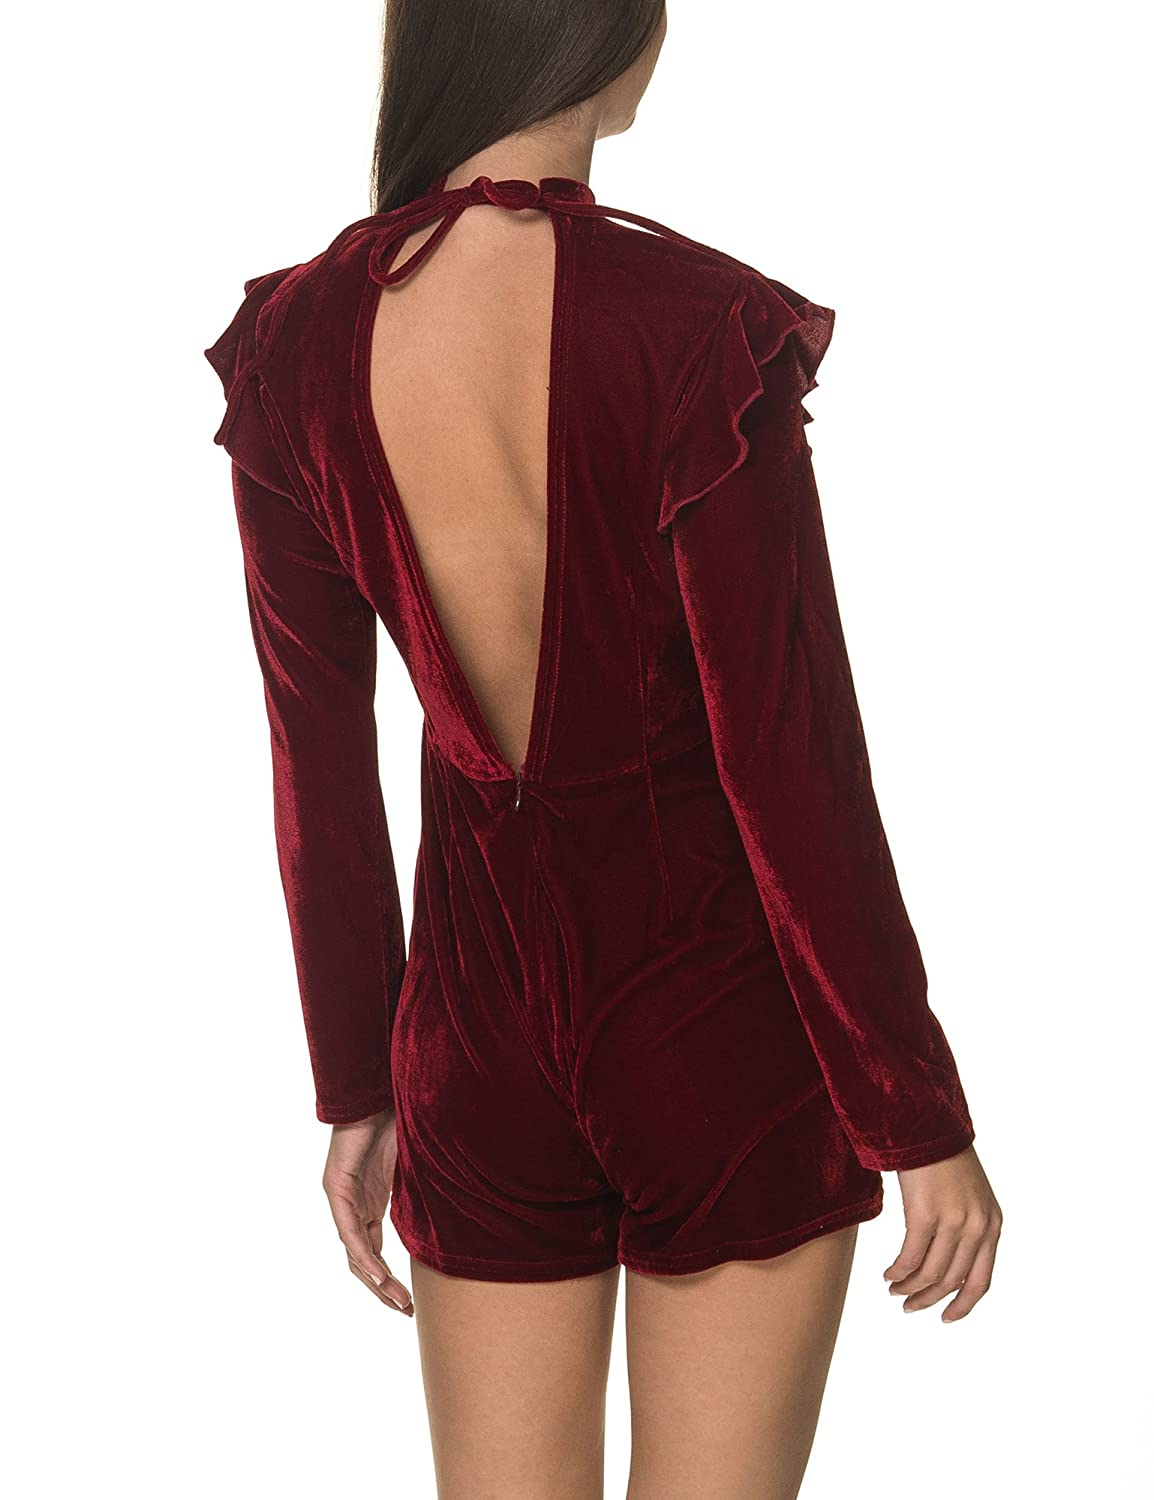 207794a7326 Amazon.com  Glamorous Women s Velvet Playsuit Burgundy in Size X-Small   Clothing